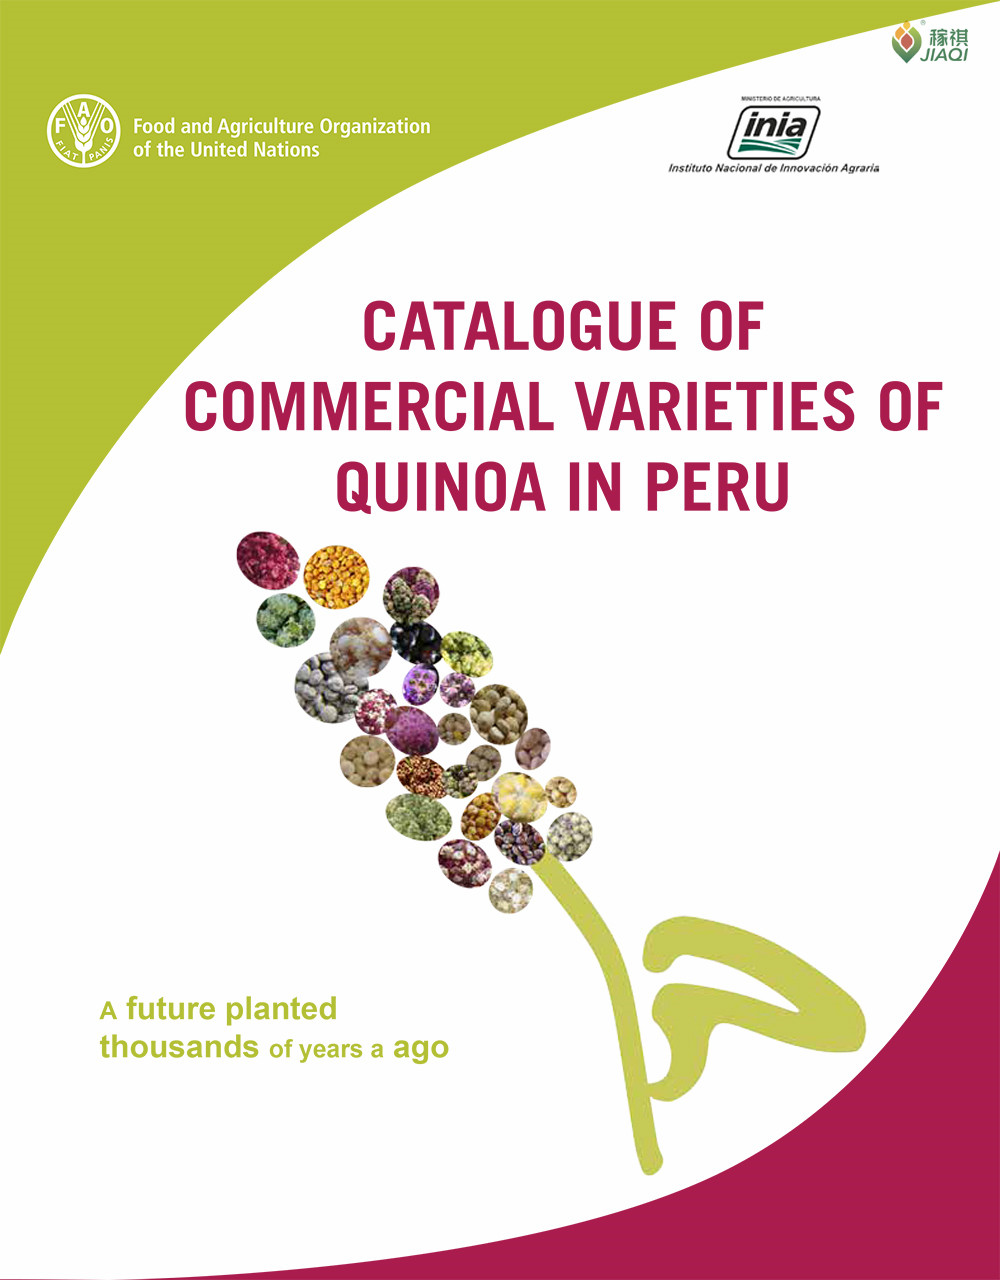 CATALOGUE OF COMMERCIAL VARIETIES OF QUINOA IN PERU